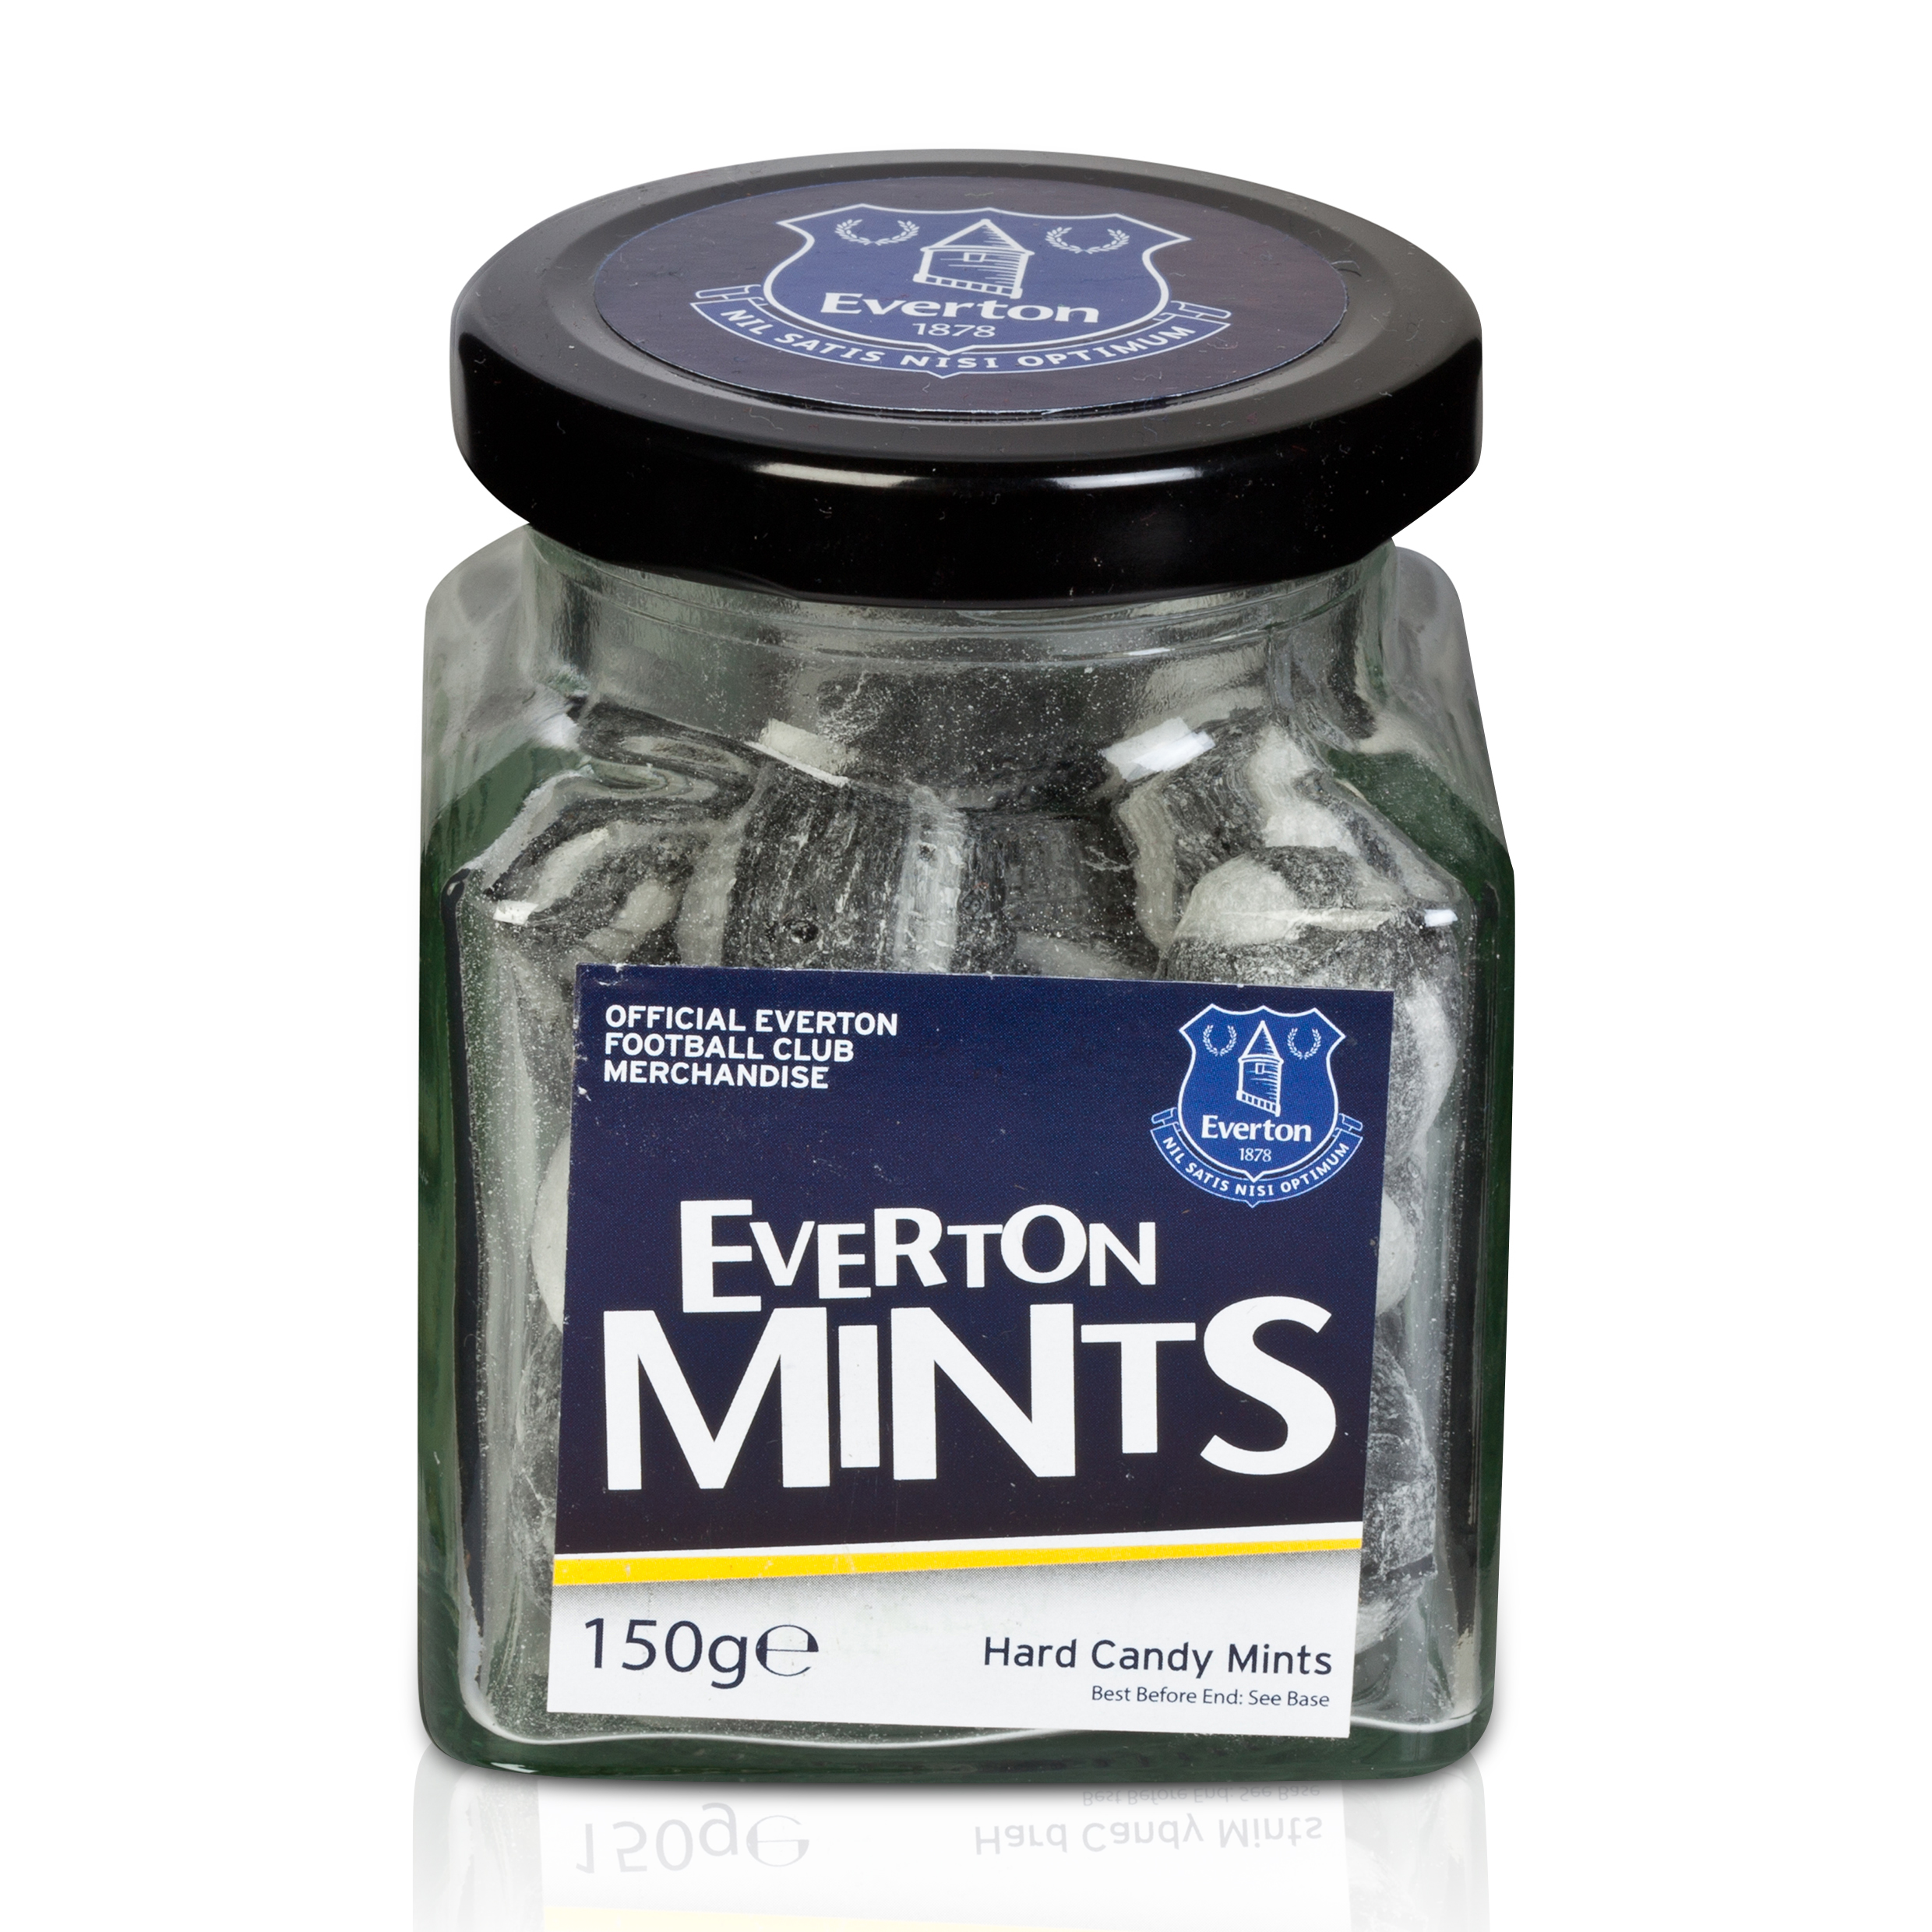 Everton Mints 150g Jar